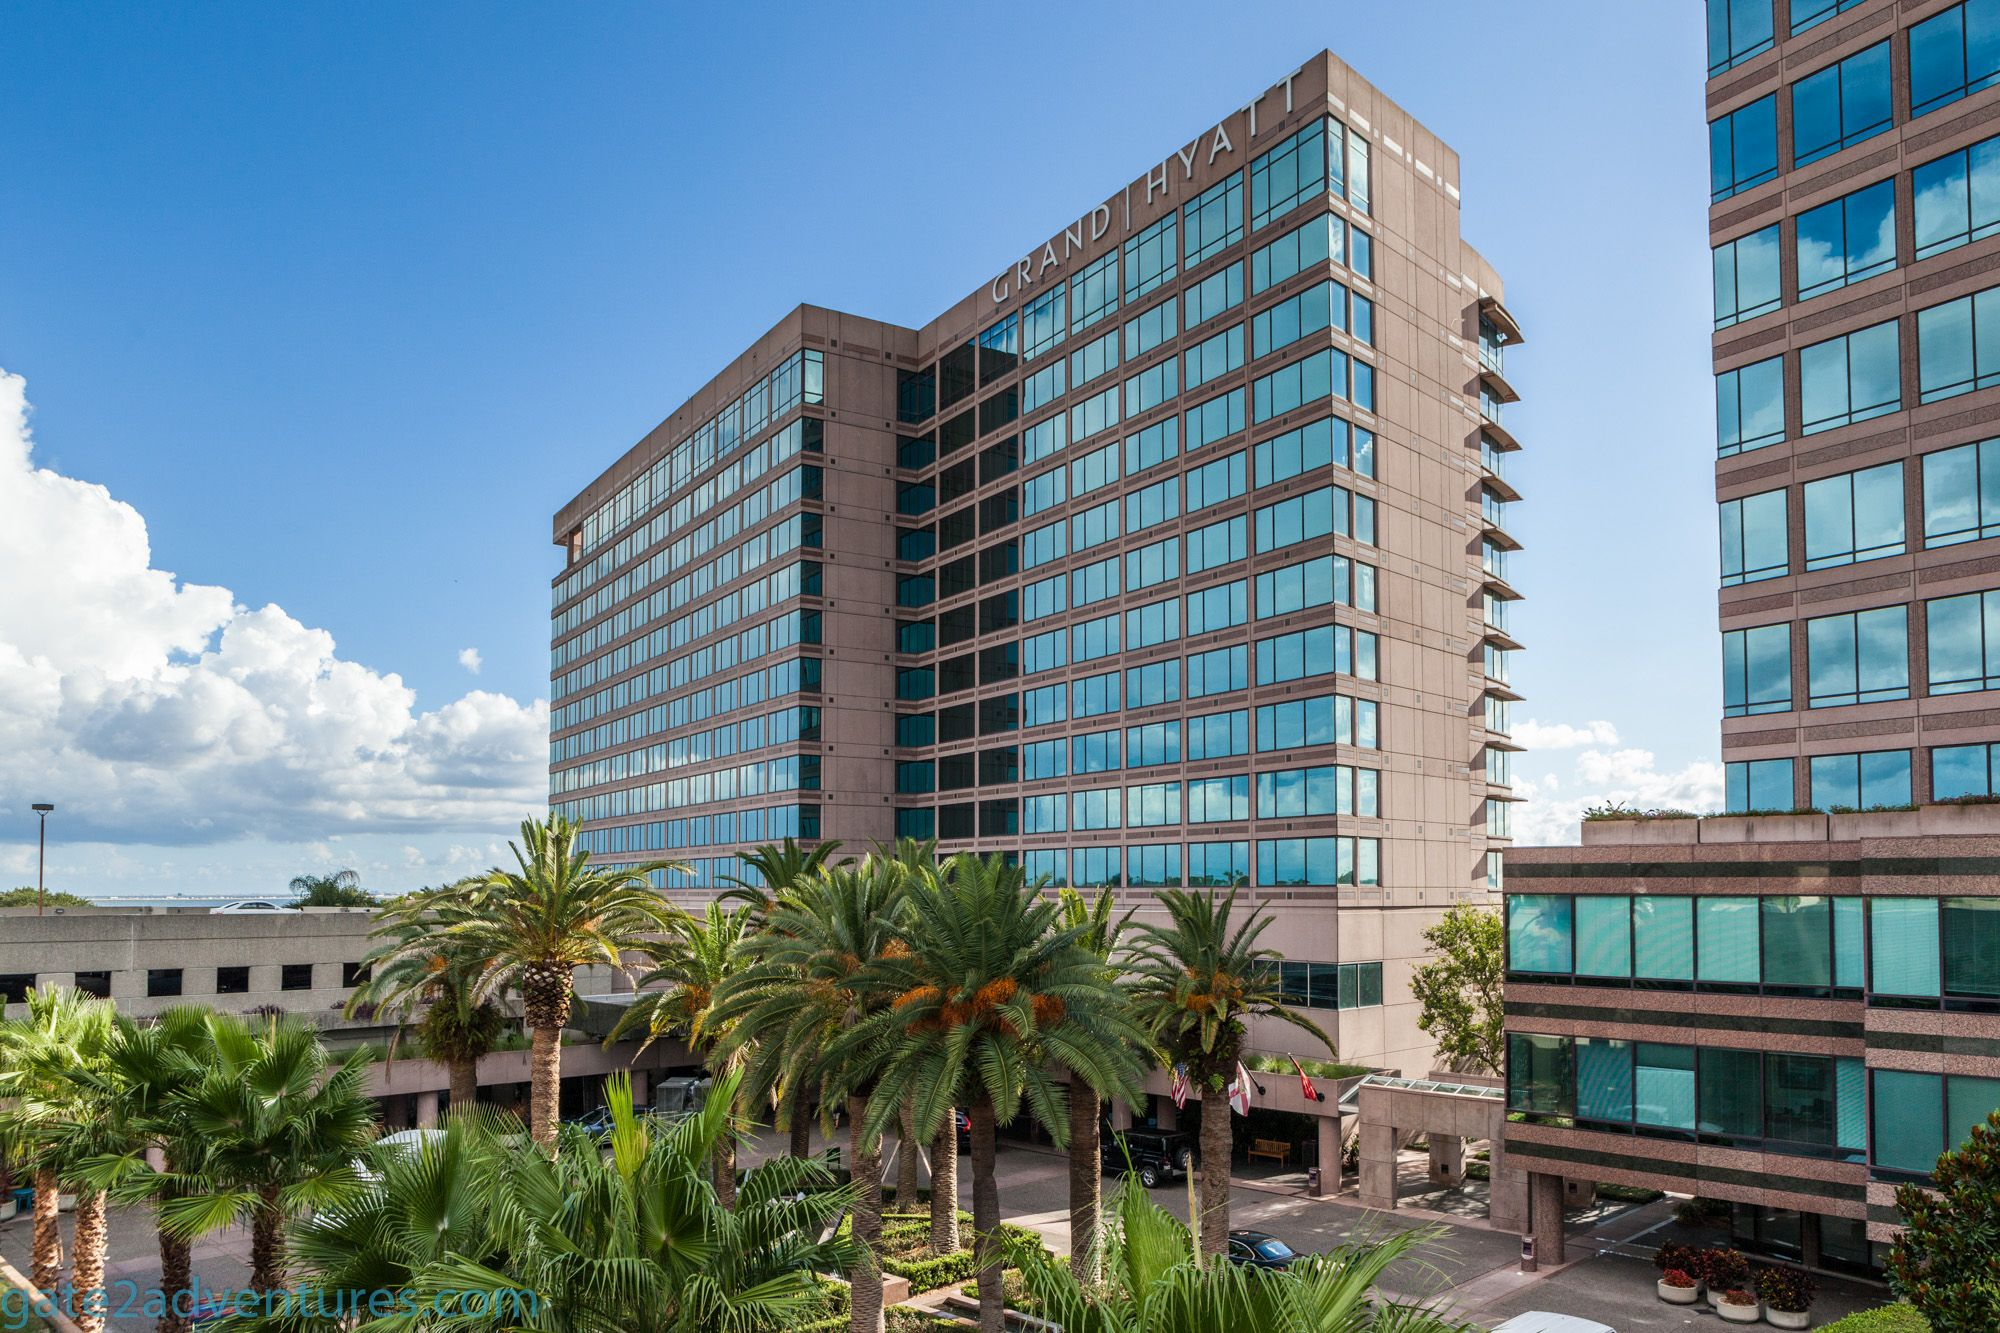 Hotel Review: Grand Hyatt Tampa Bay